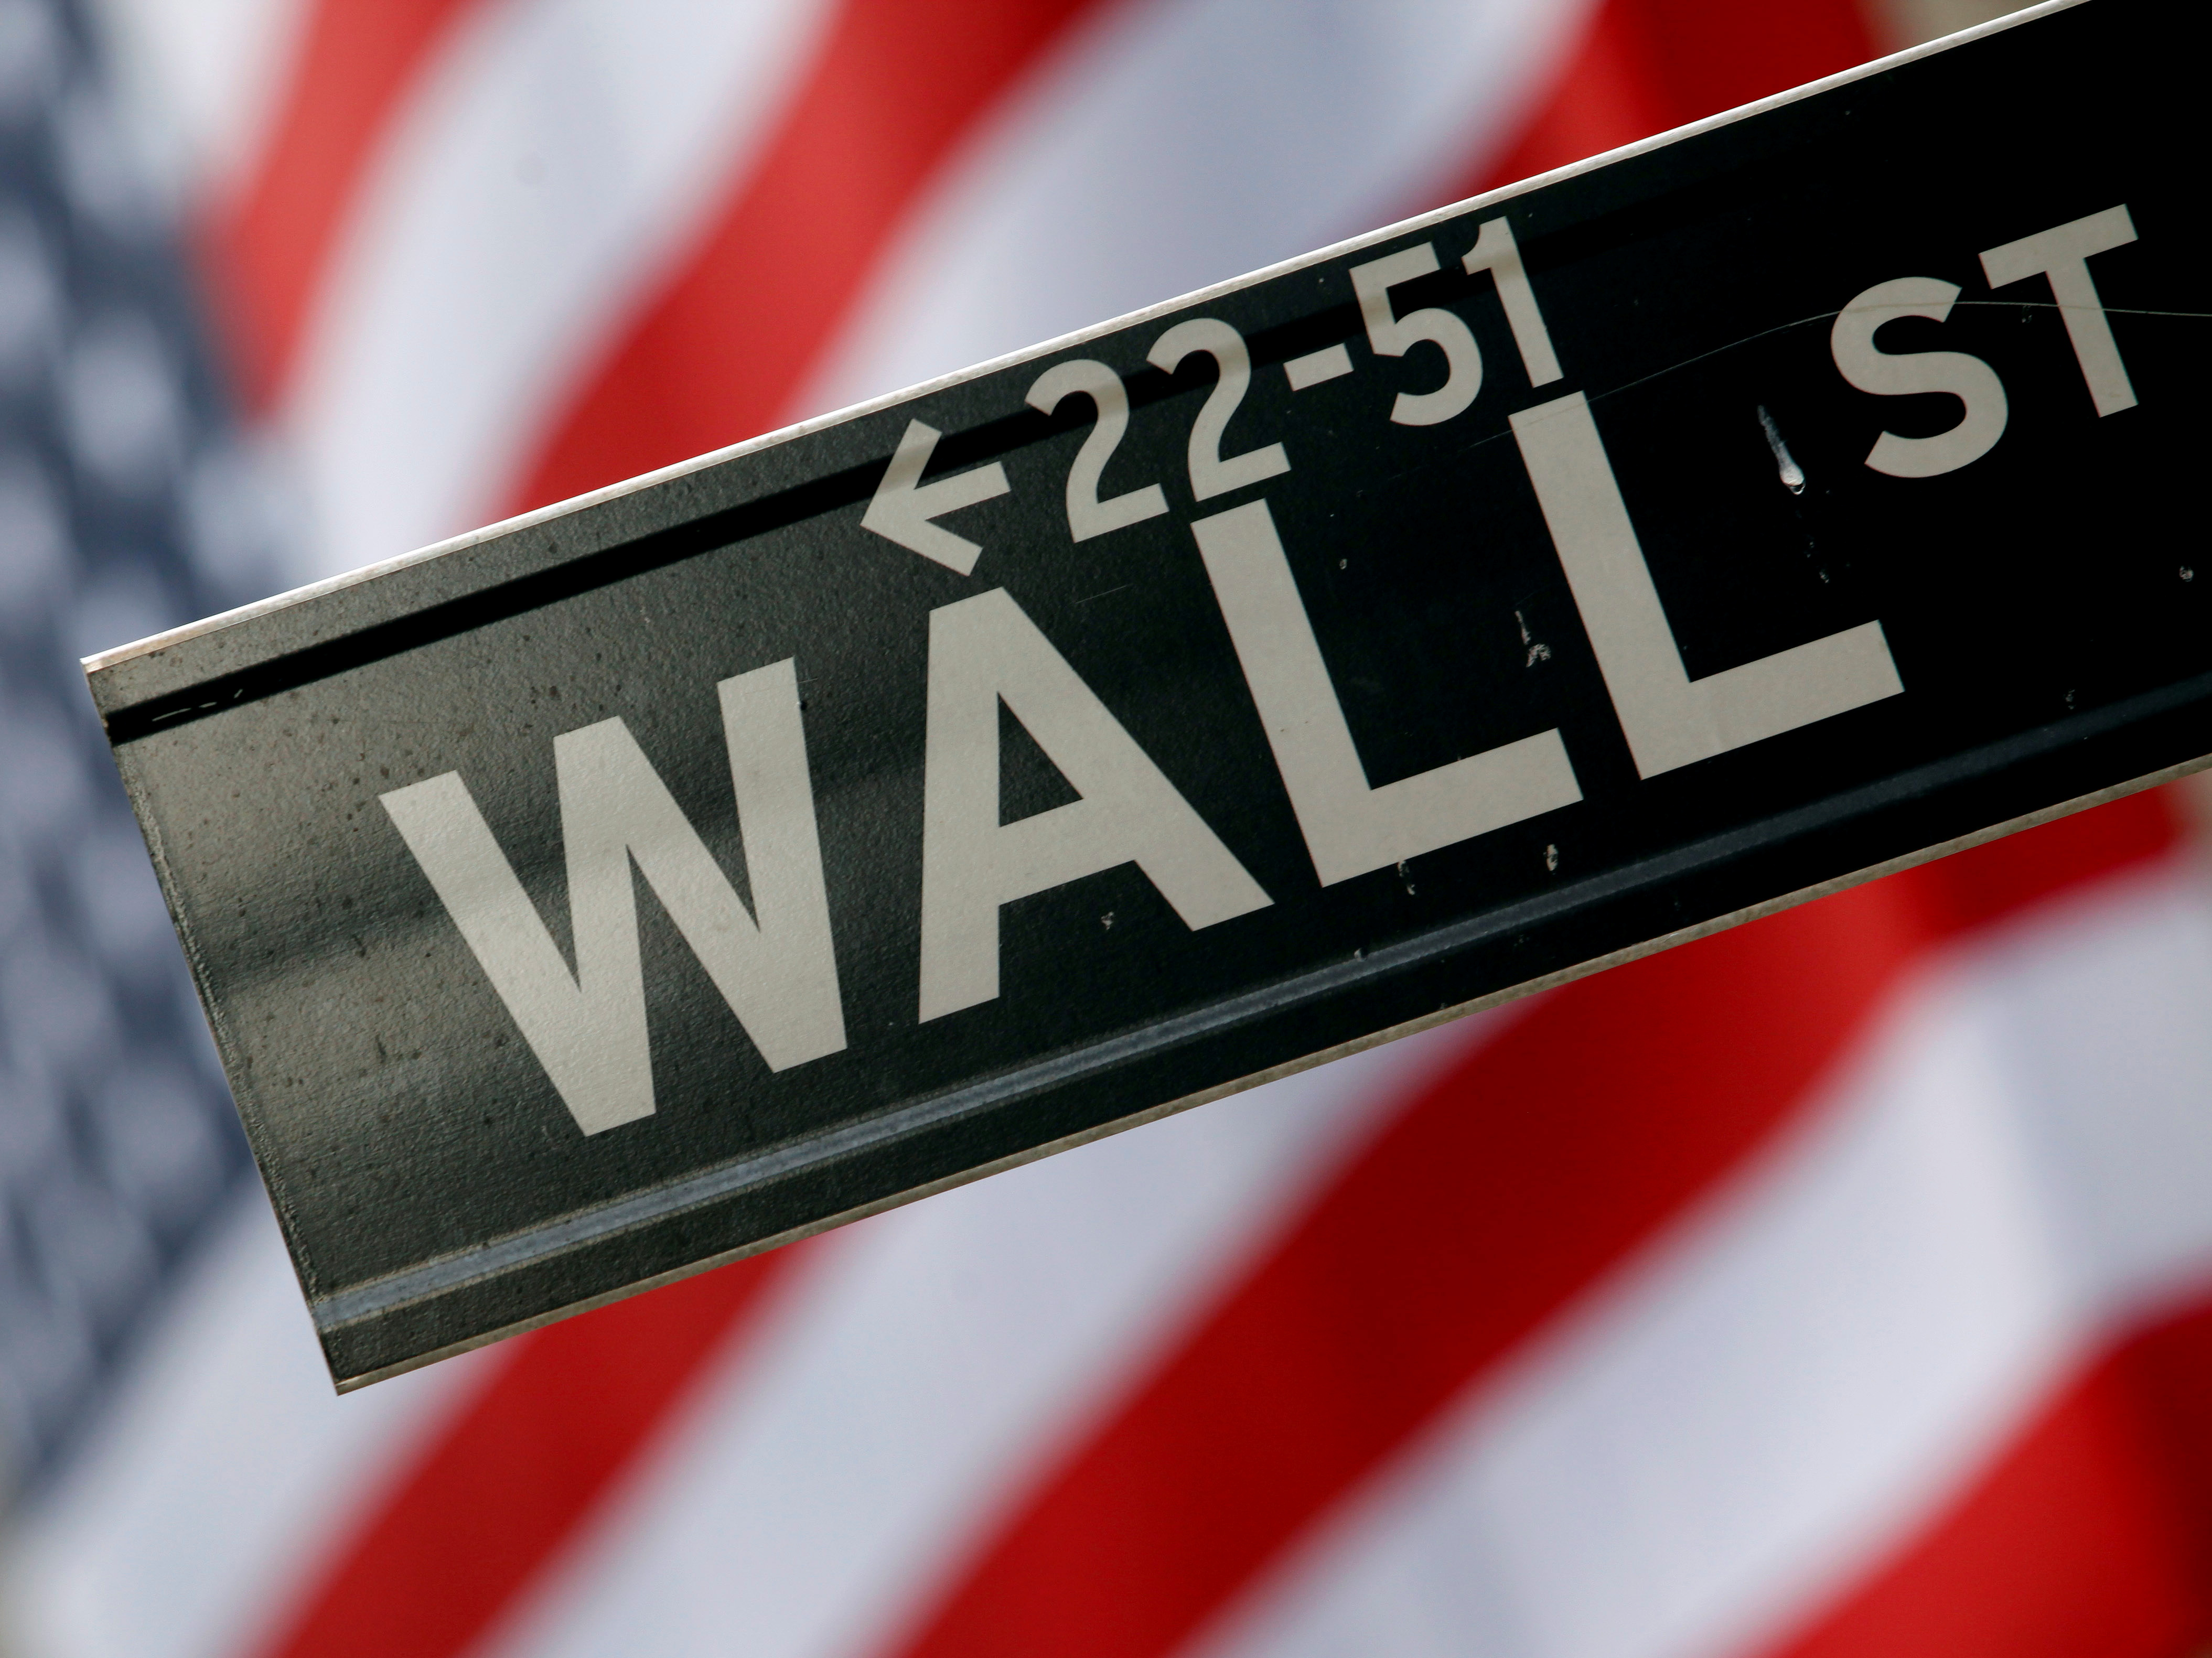 A street sign is seen in front of the New York Stock Exchange on Wall Street in New York, February 10, 2009. REUTERS/Eric Thayer/File Photo